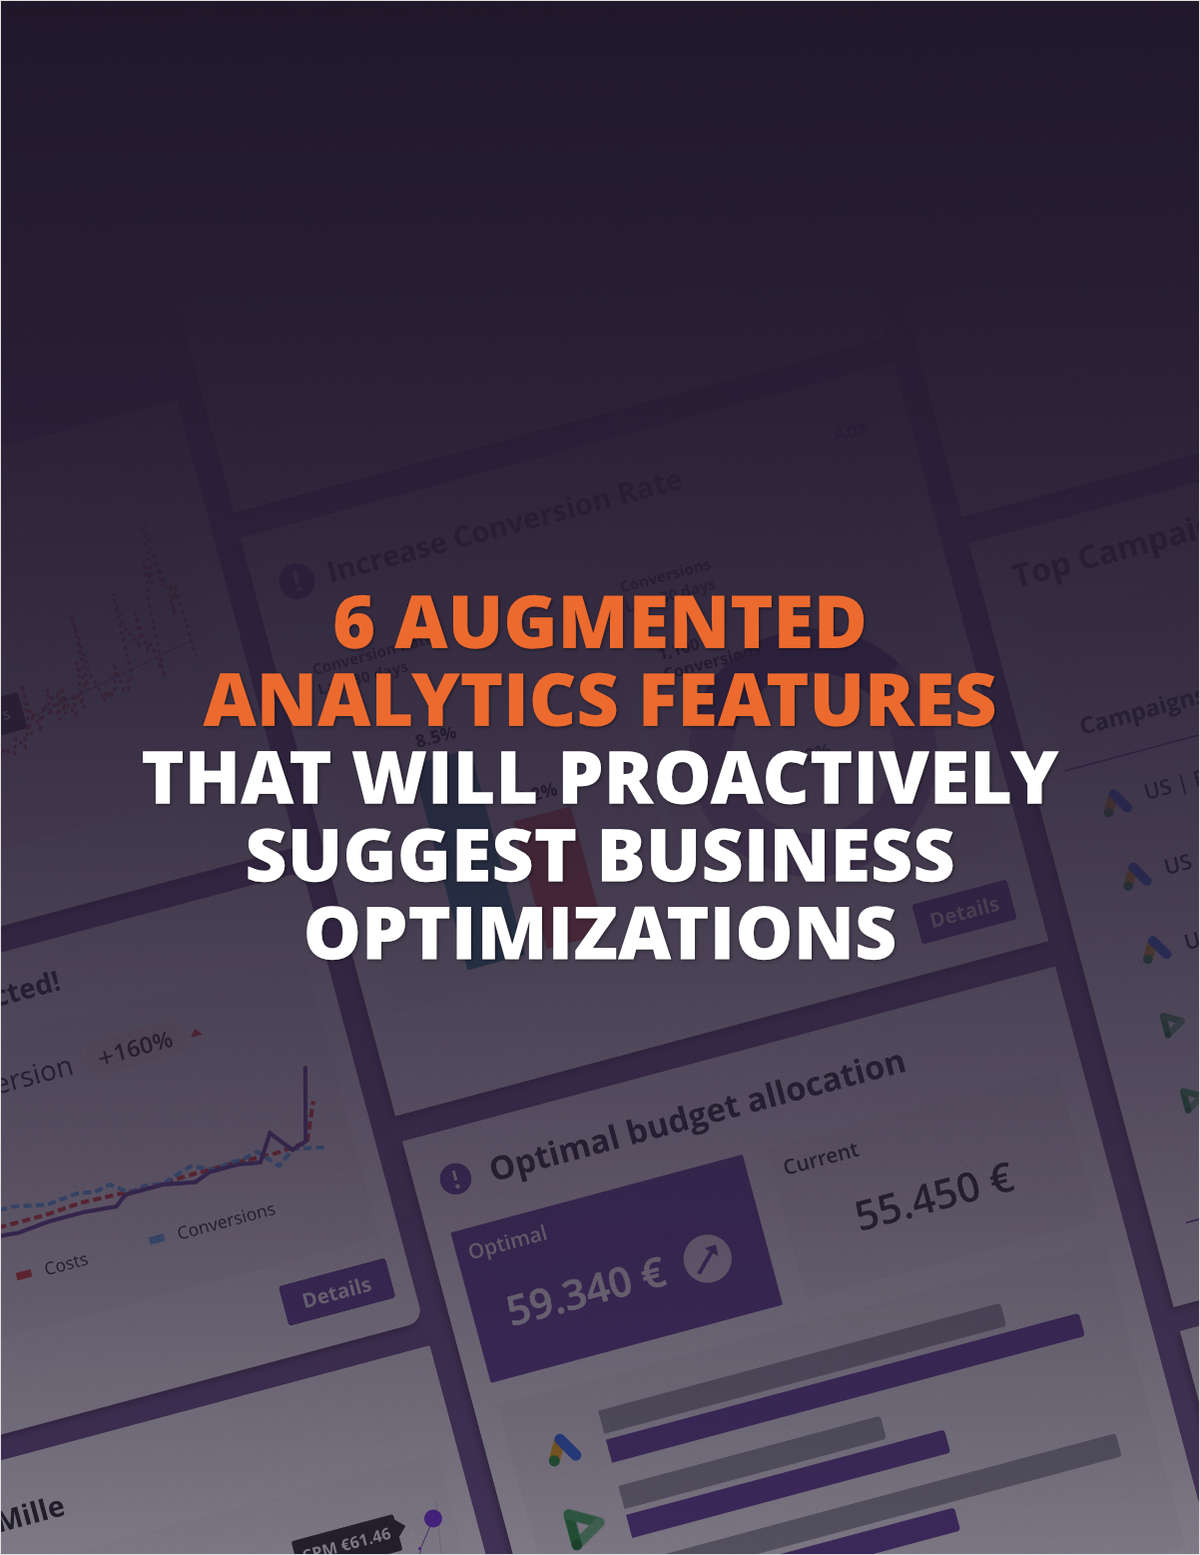 6 AUGMENTED ANALYTICS FEATURES THAT WILL PROACTIVELY SUGGEST BUSINESS OPTIMIZATIONS